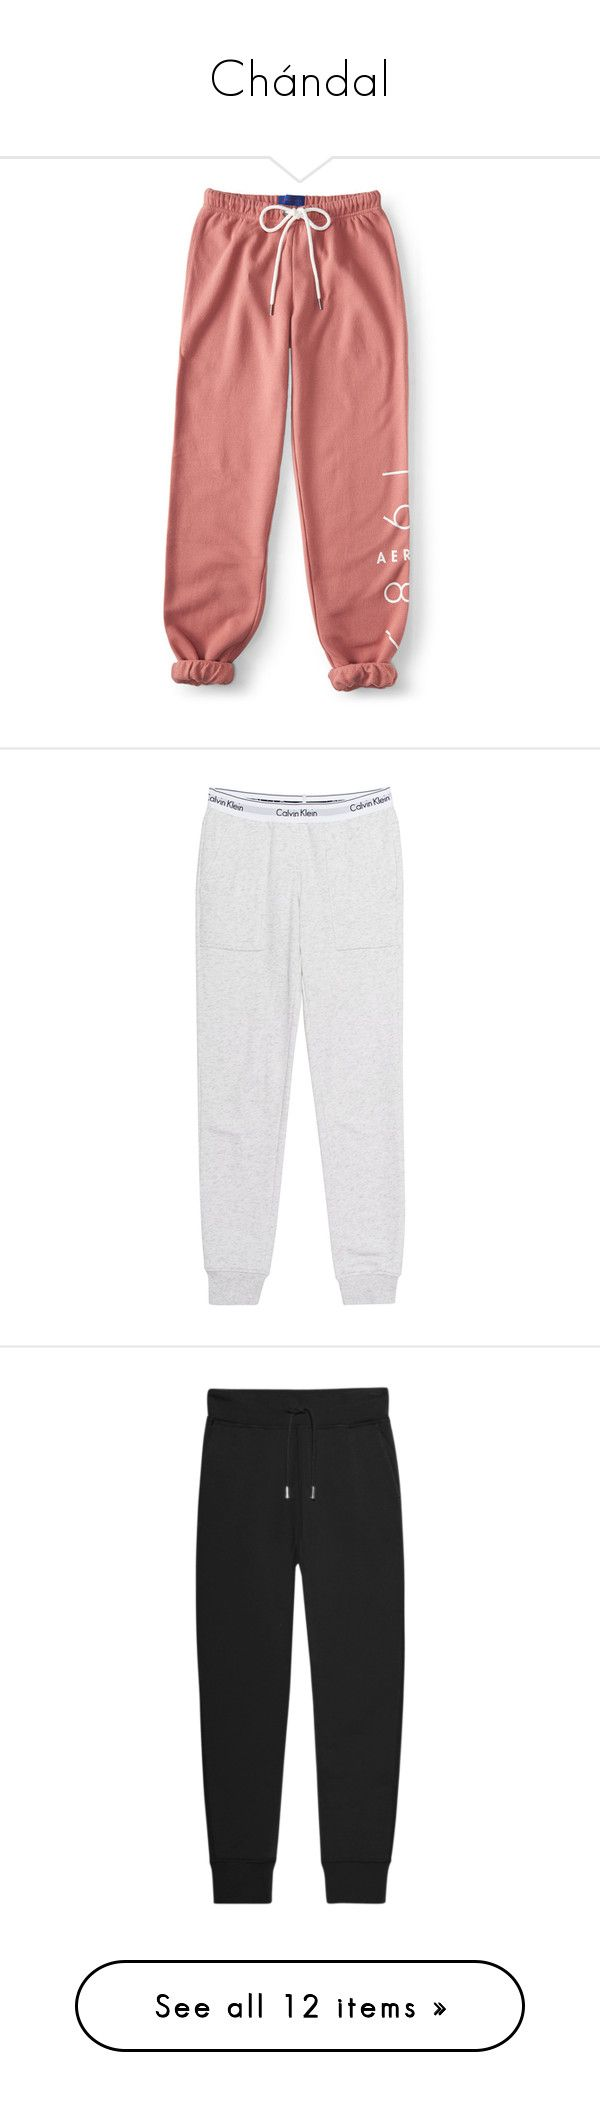 """""""Chándal"""" by cecyherondale ❤ liked on Polyvore featuring activewear, activewear pants, bottoms, berry blush, aéropostale, relaxed fit sweatpants, sweat pants, red sweat pants, aeropostale sweatpants and slim fit sweatpants"""